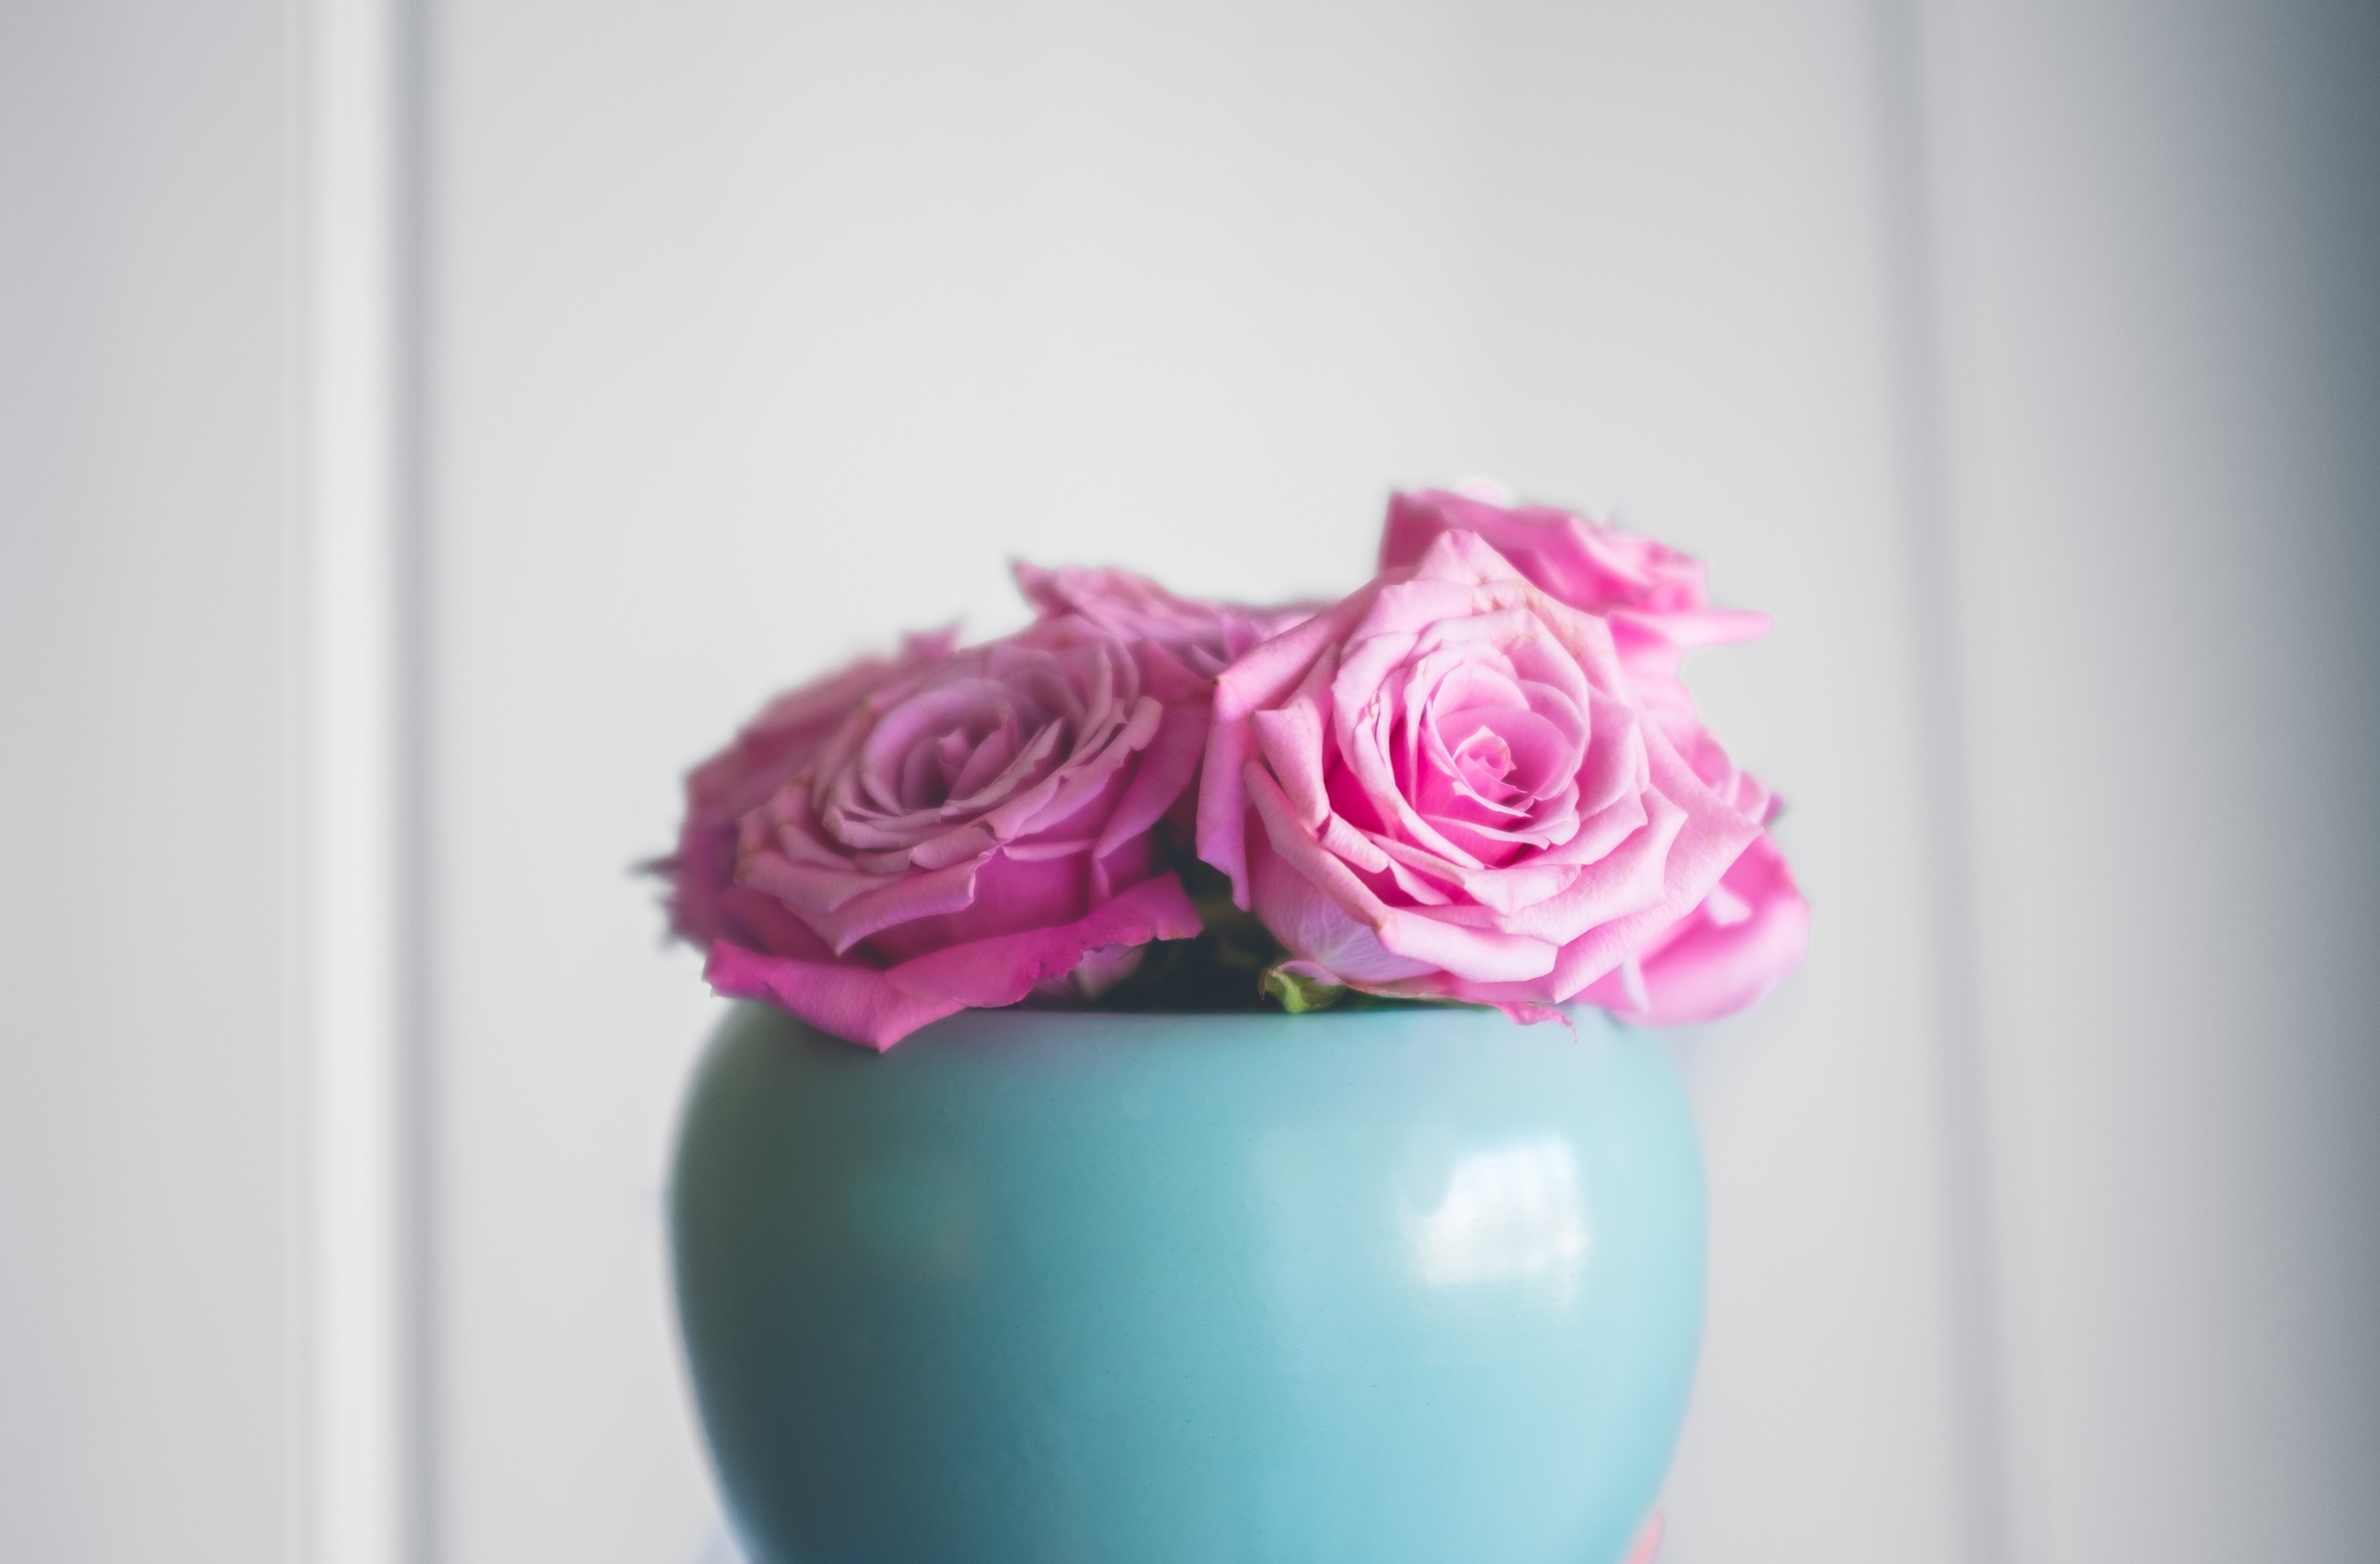 pink roses on teal ceramic vase